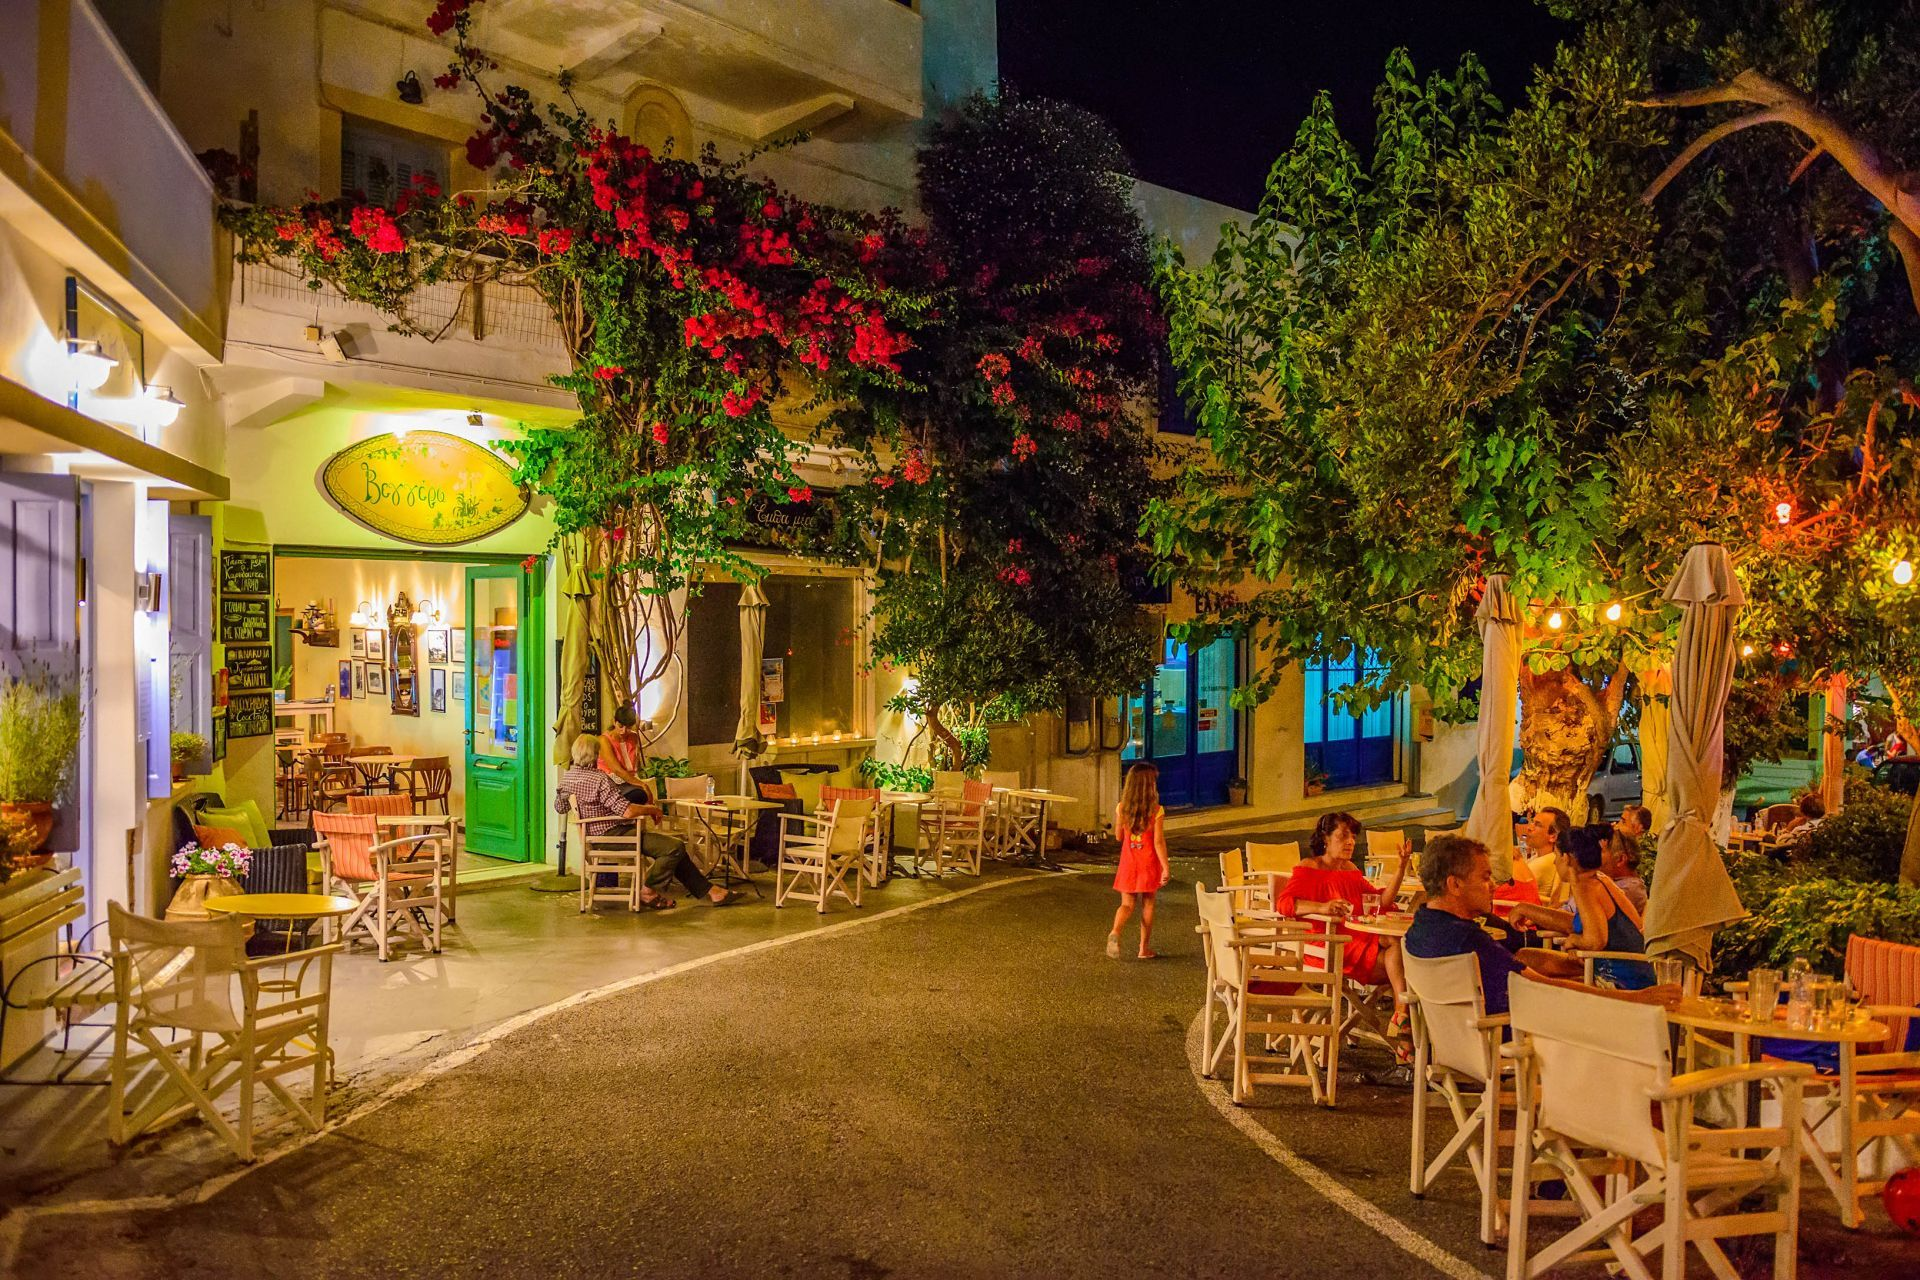 Places to eat and drink in Kythira